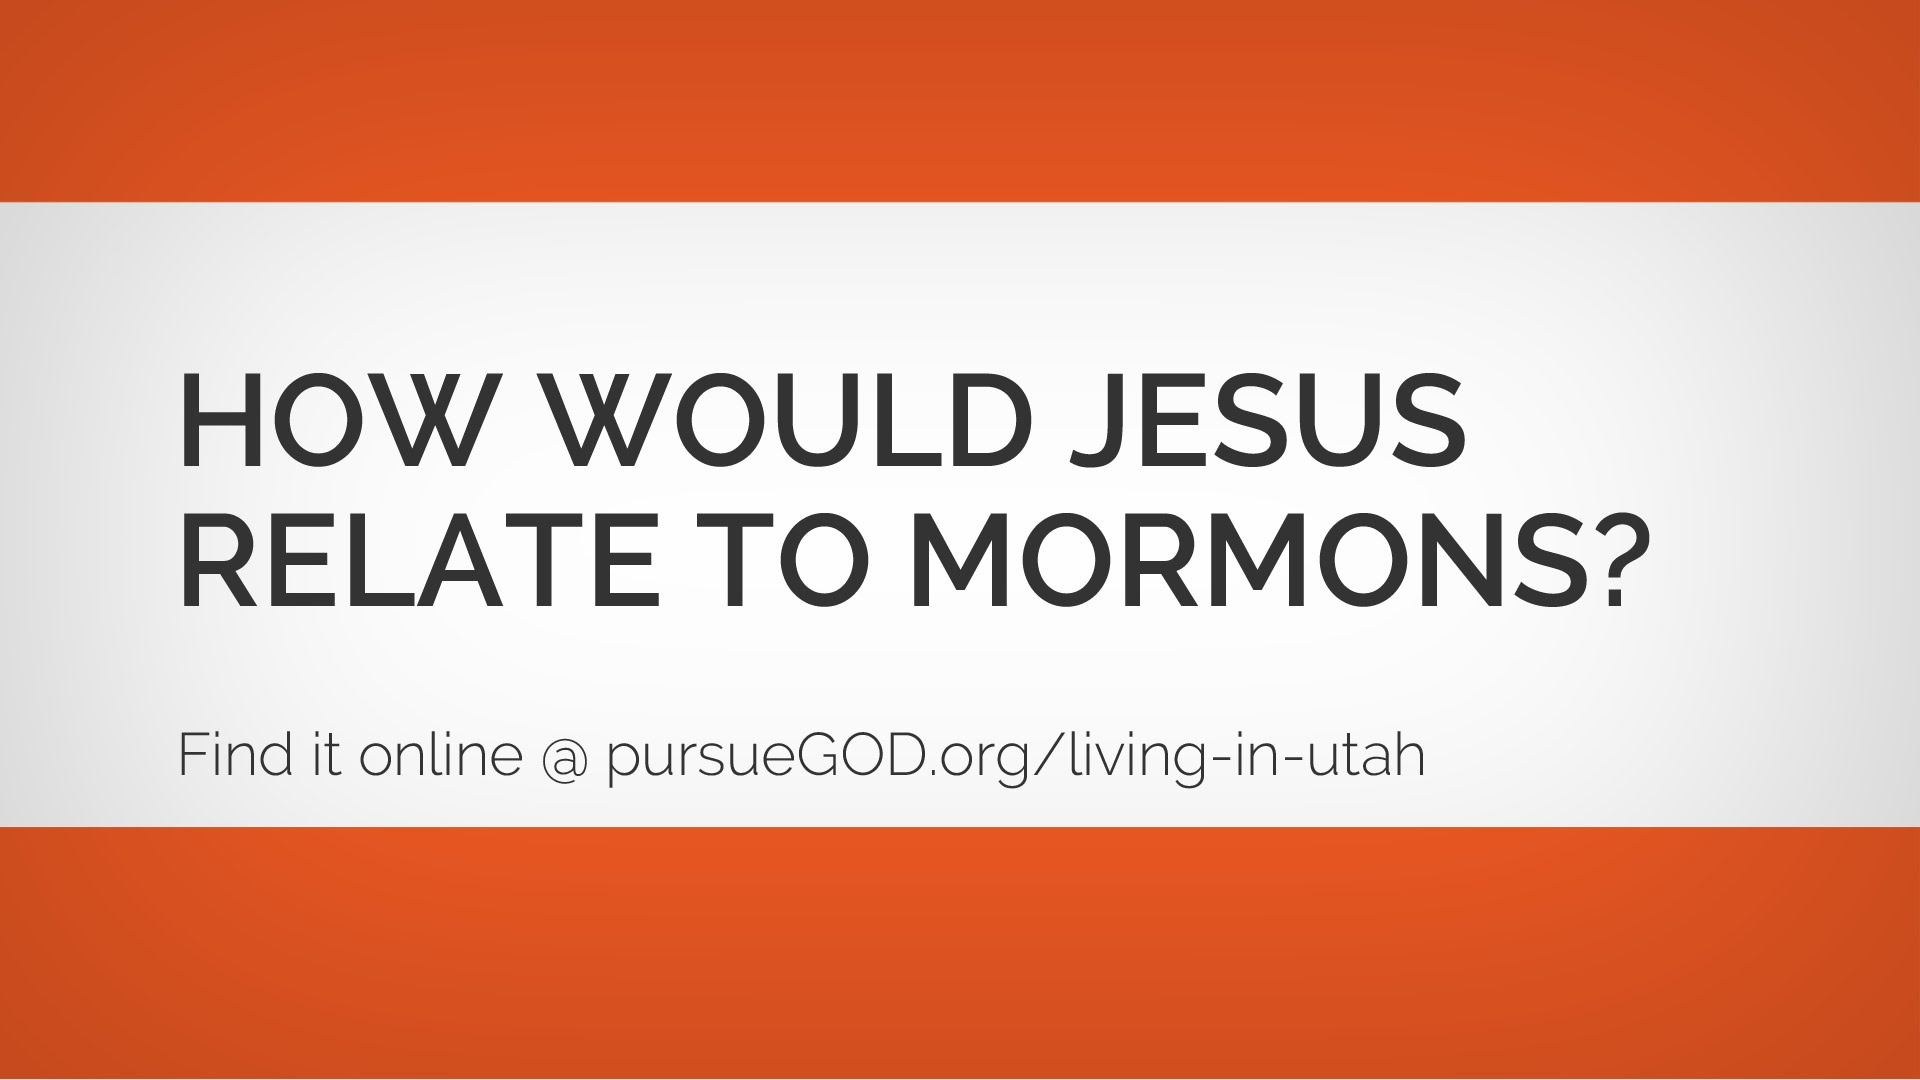 How Would Jesus Relate to Mormons?